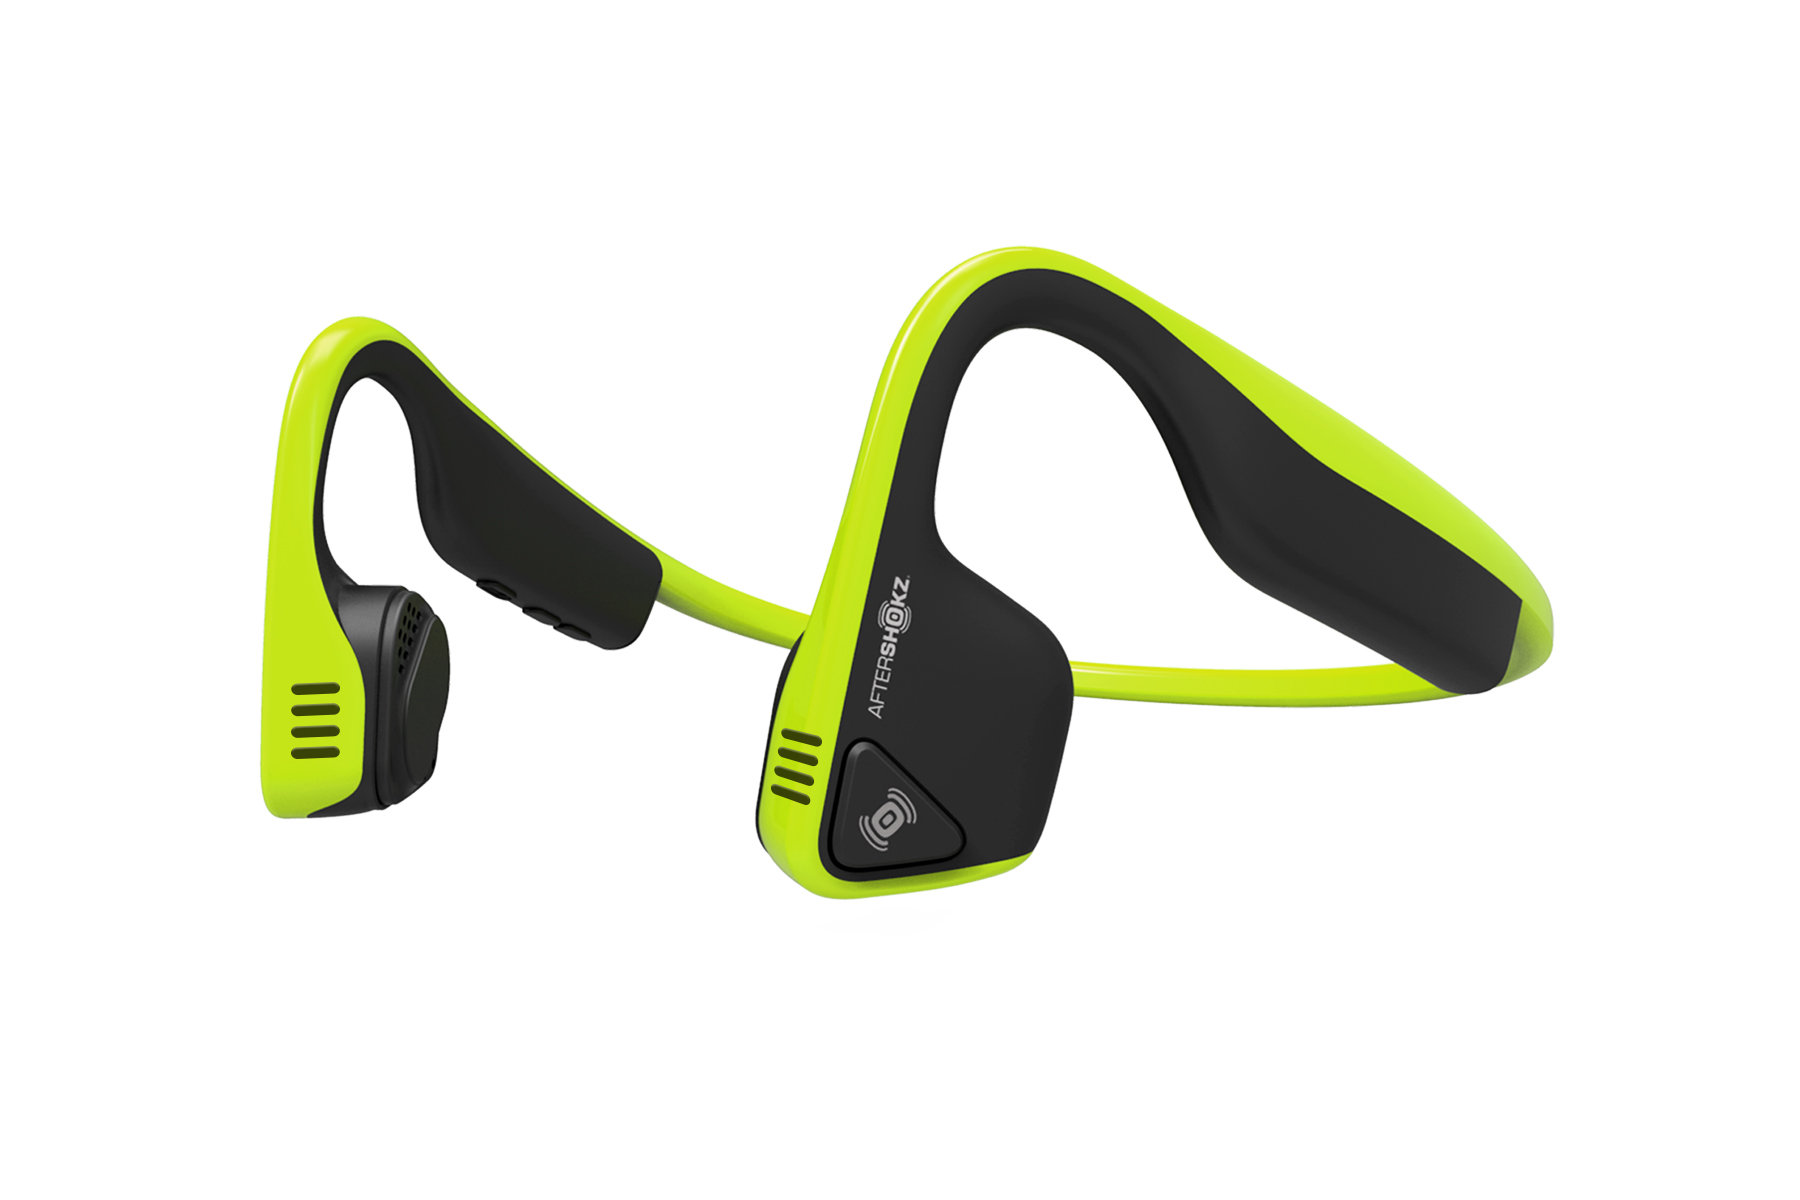 Рис. 4. Беспроводные Aftershokz Bluez 2 Wireless Bone Conduction Headphones